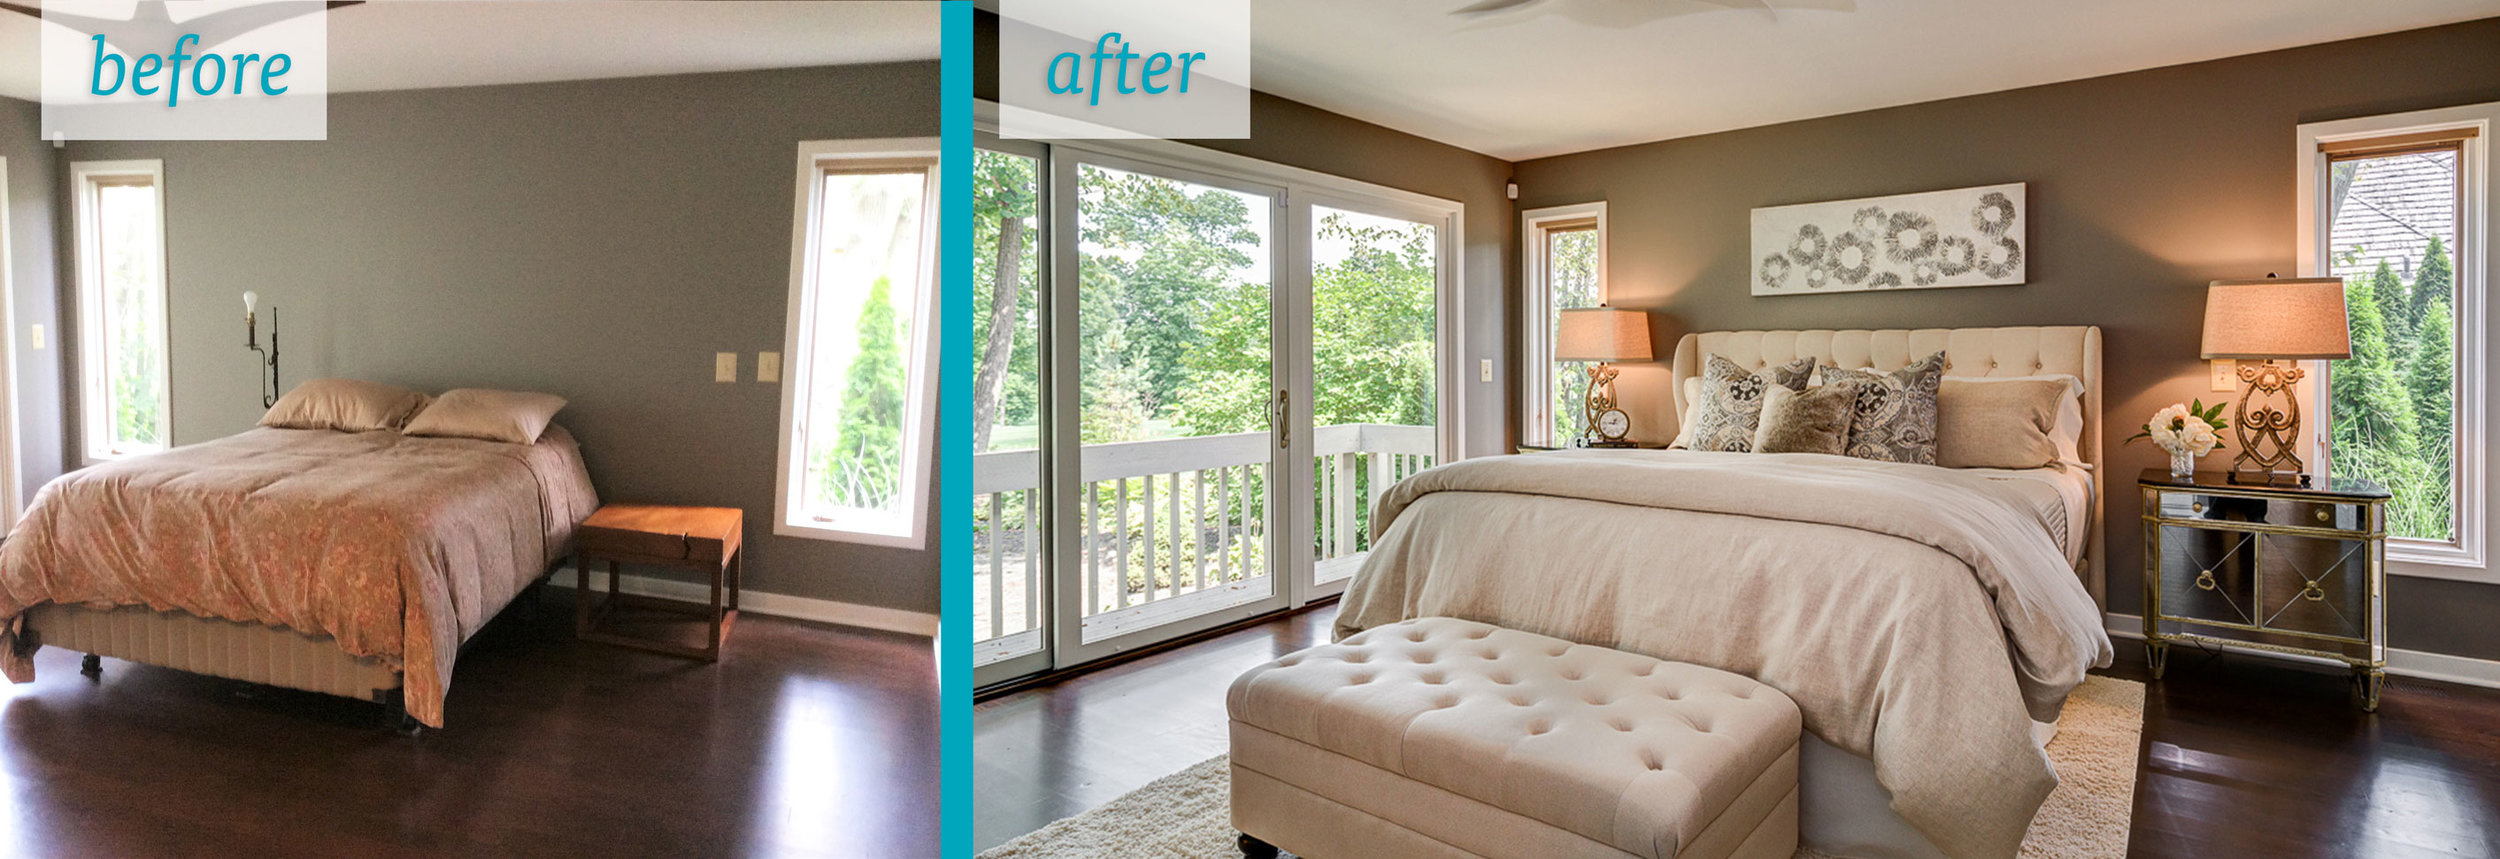 large-hardwick3-bedroom-before-after.jpg